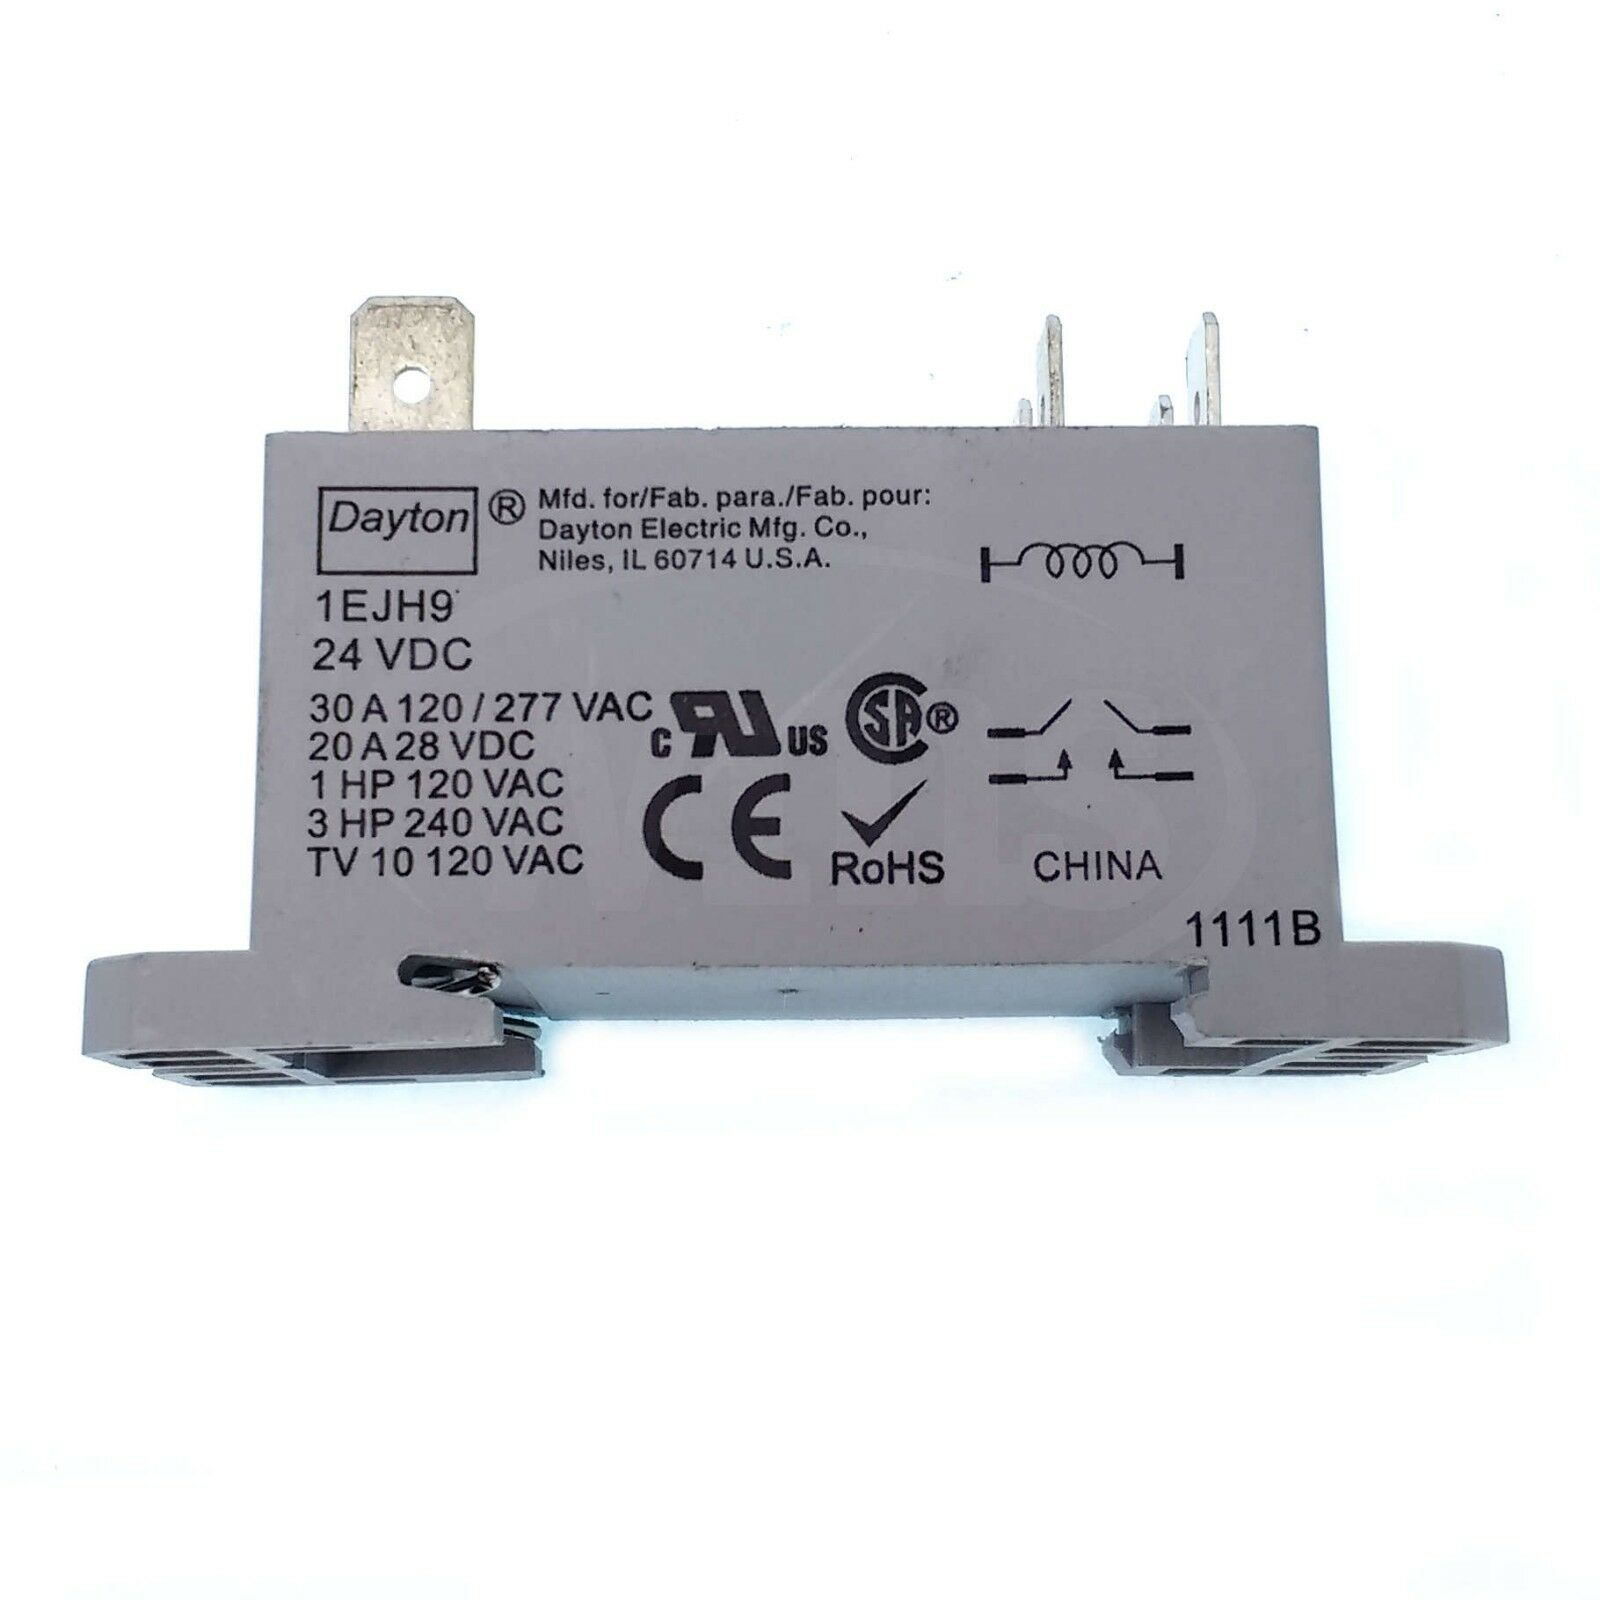 Dayton 1EJH9 30 Amp Power Relay Dpst-no 24vdc Coil for sale online